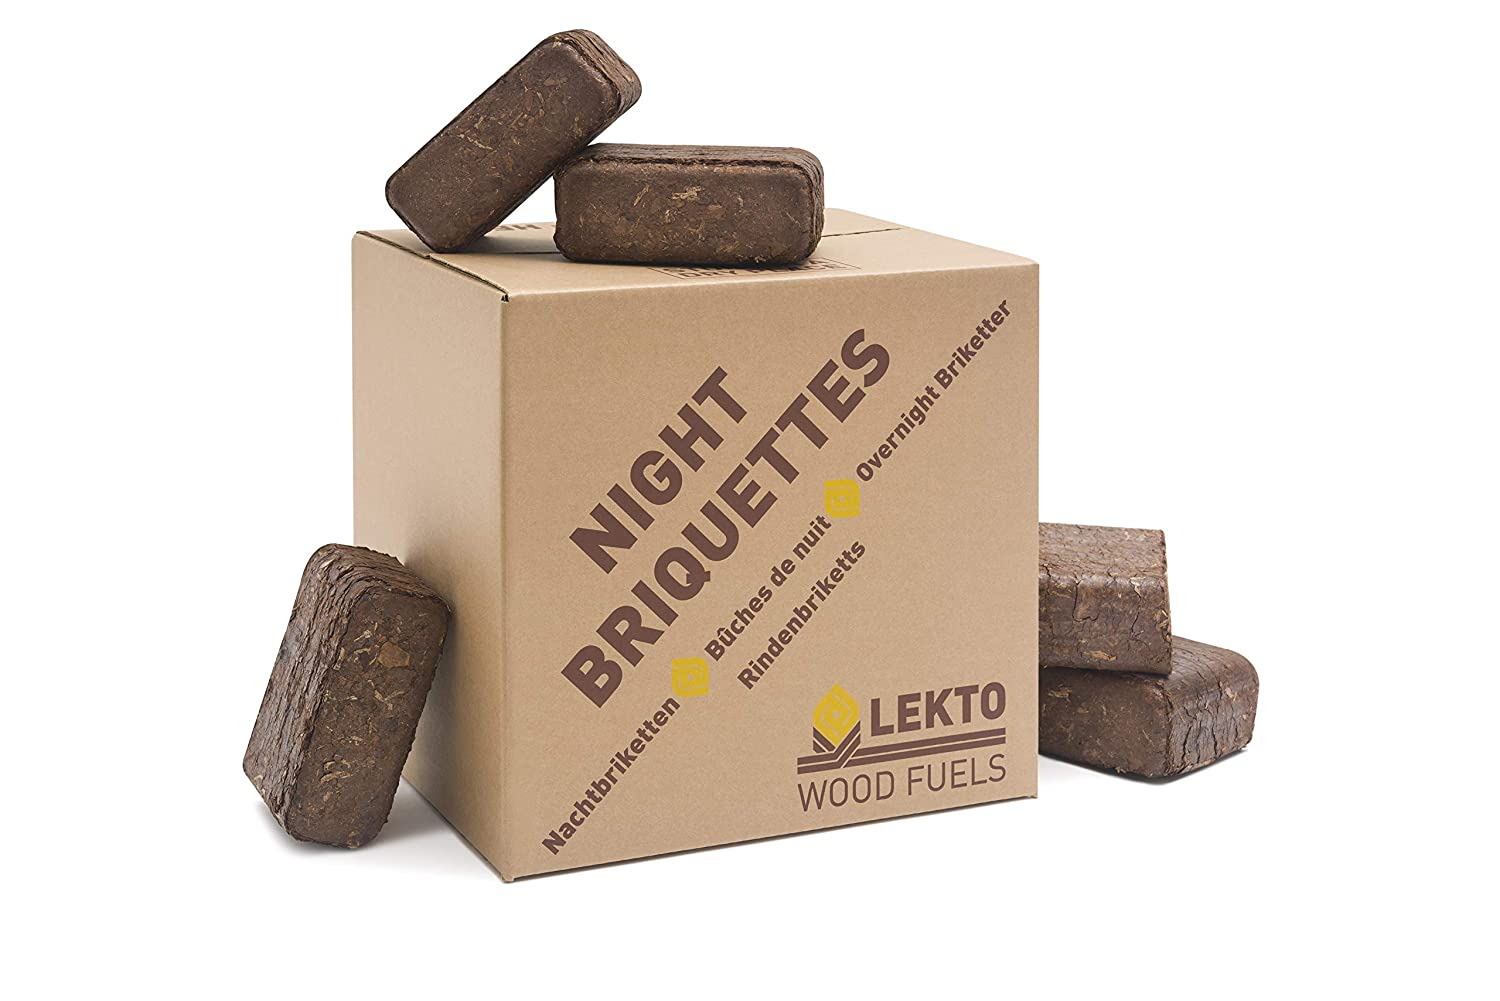 Lekto Night Briquettes 20KG | Long Slow Burn Up To 8 Hours | Overnight / Day Firewood Stove Heat Blocks | Perfect Addition To Traditional Kiln Dried Fire Wood | Multi Fuel Eco Pack Options For Log Burners - Open Fires - Wood Burning Stoves Lekto Wood Fuel